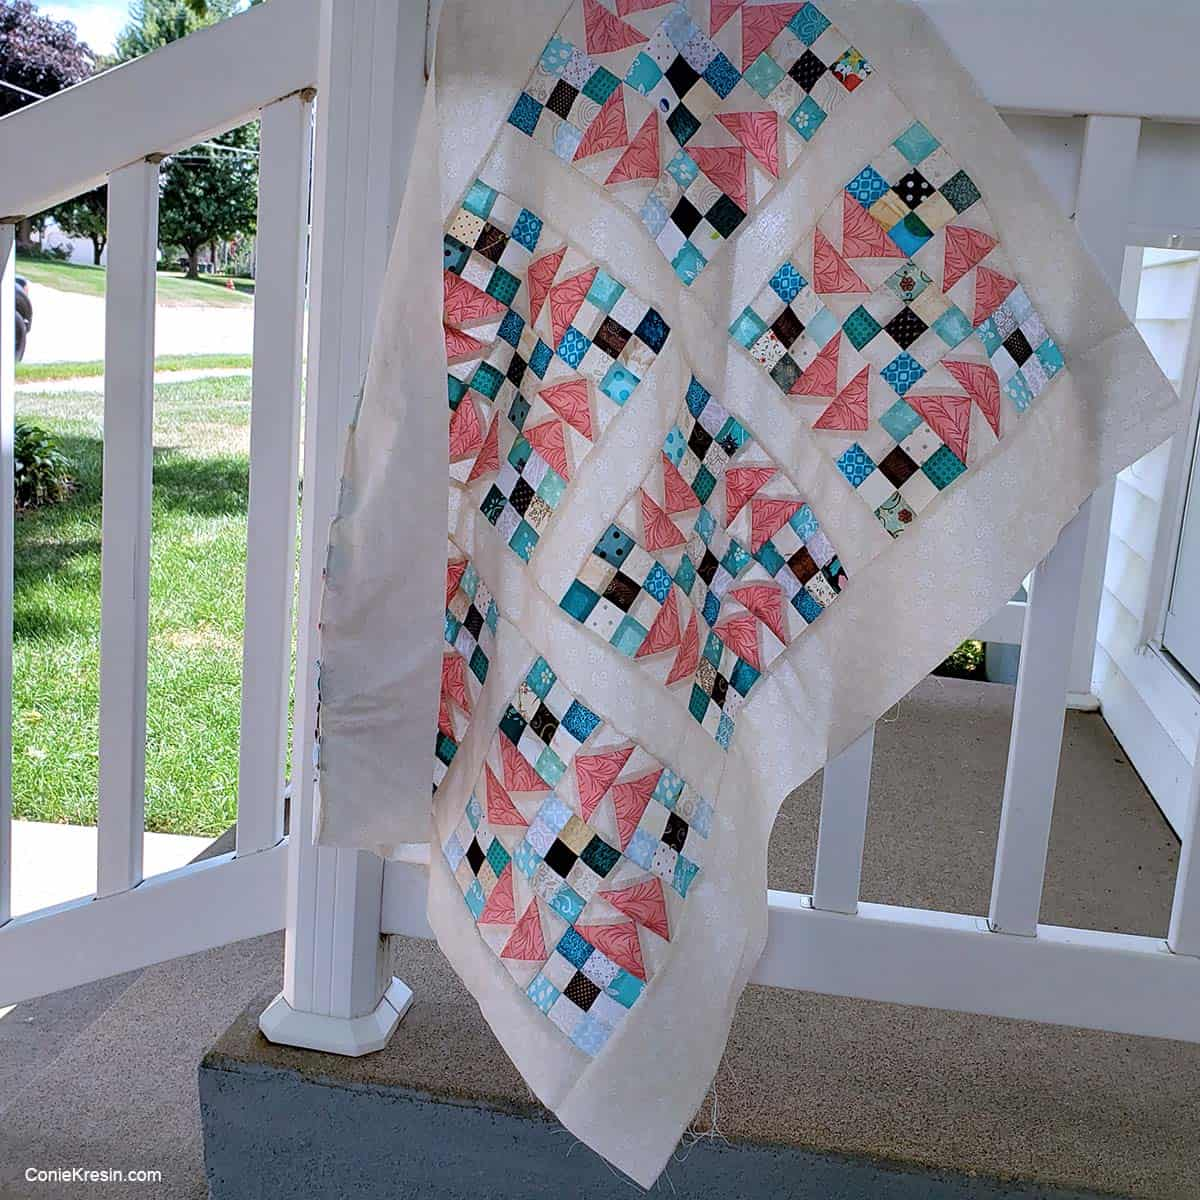 Flying 9 patch baby quilt on railing